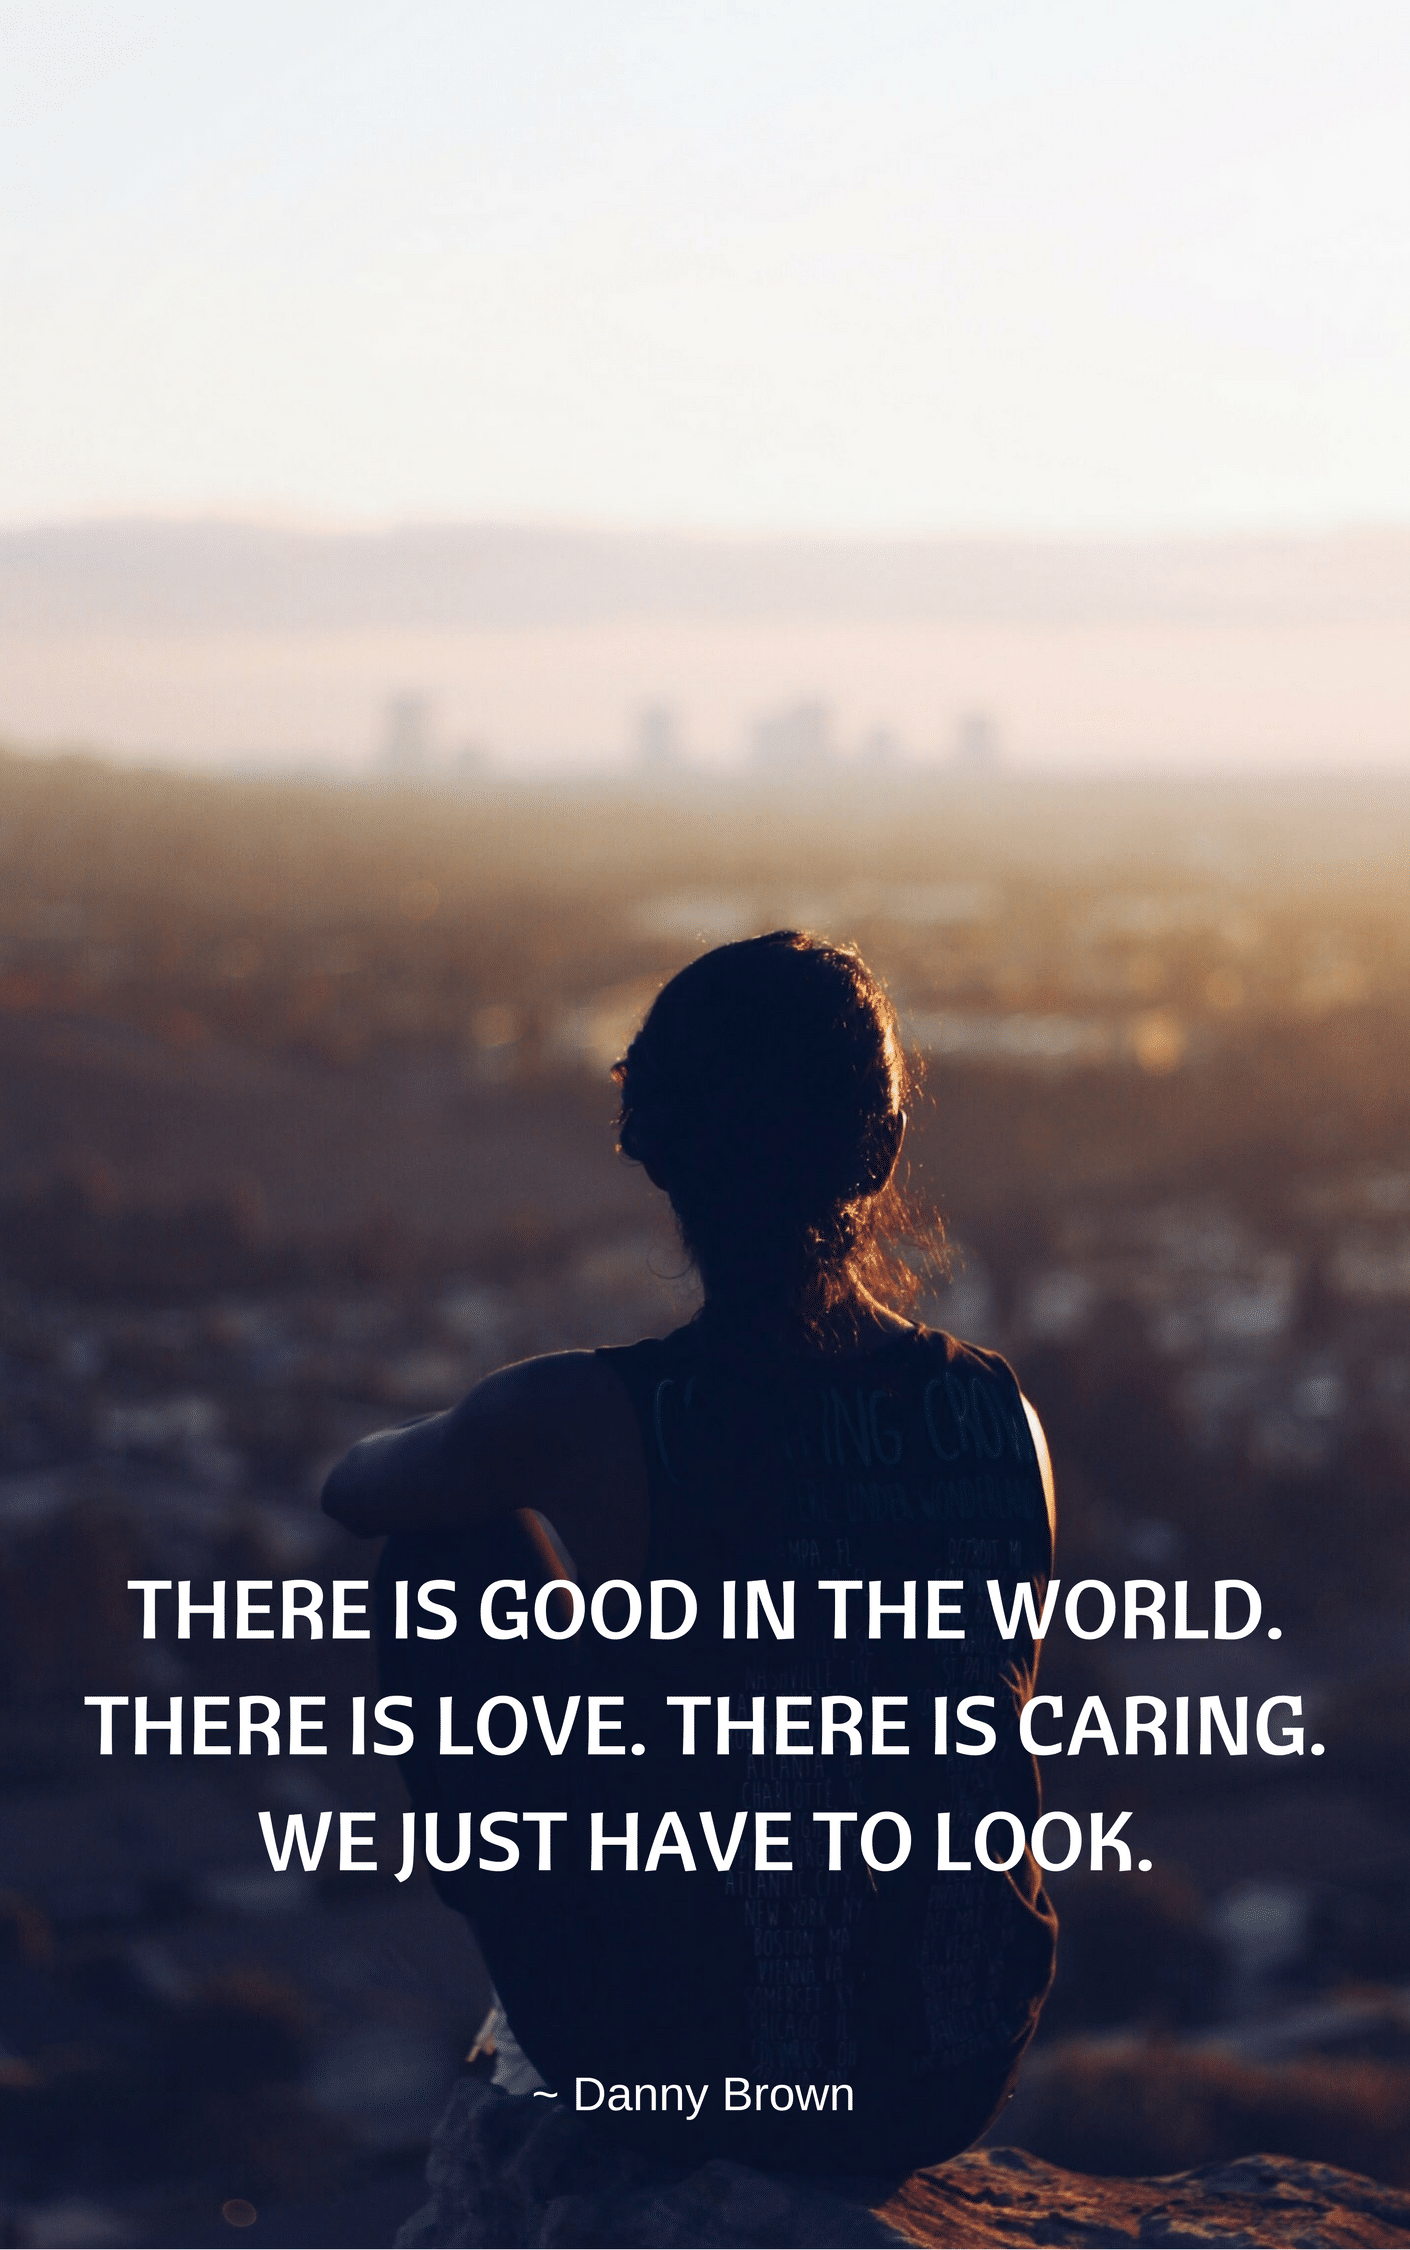 There is good. There is love. There is caring. There is all this and more – we just have to find it. Then share it. Then live it.